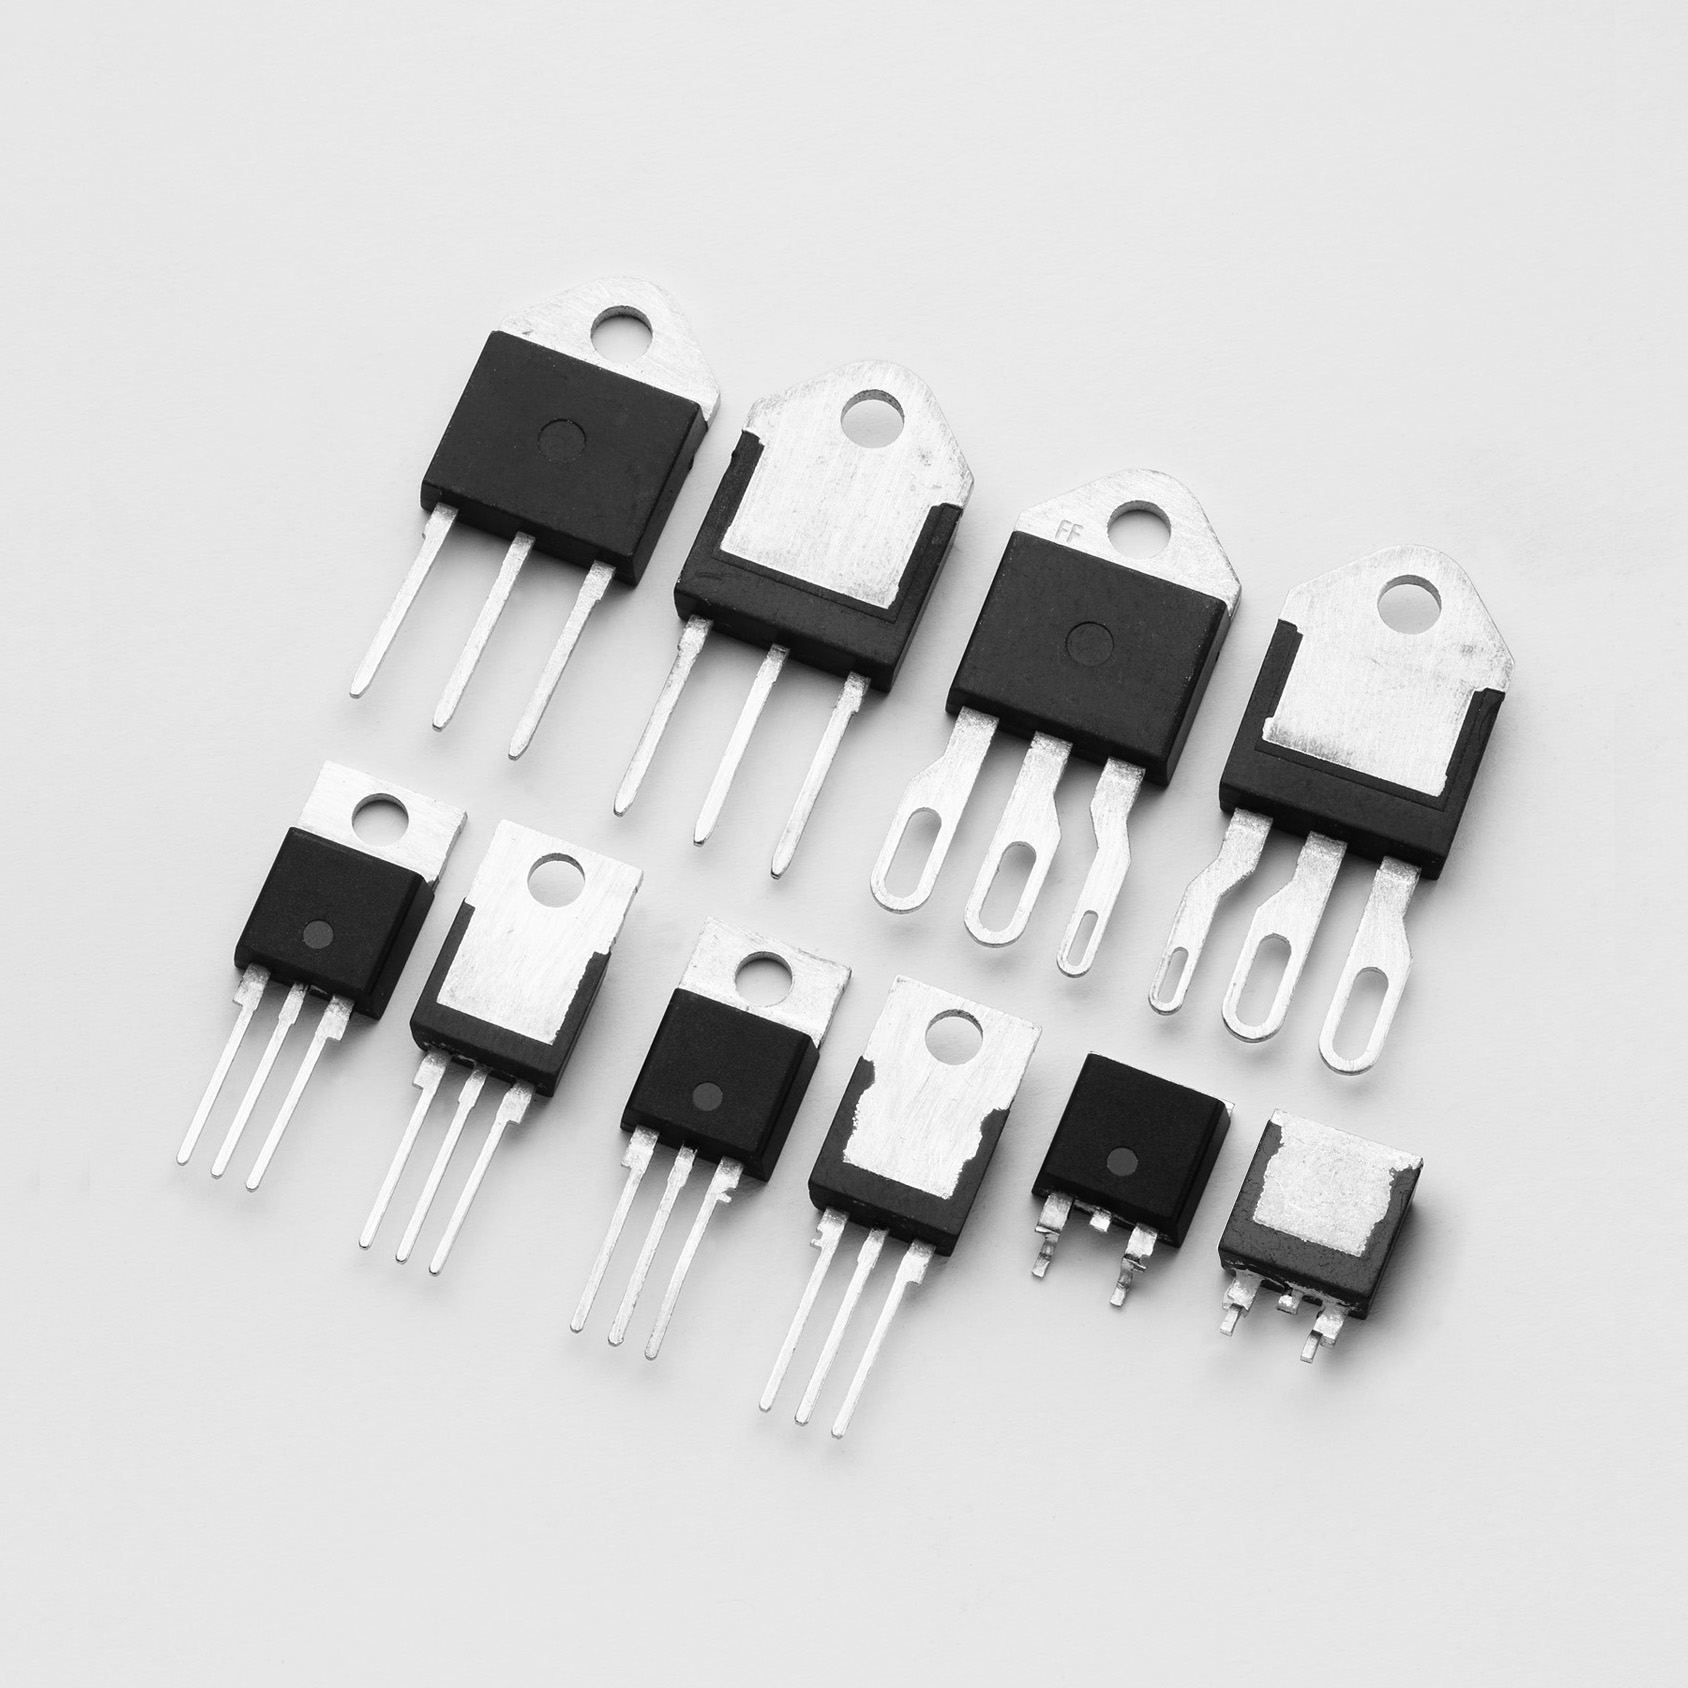 High Temperature Alternistor Triacs Simplify Thermal Management Pressed And Circuit Goes To On State Relay Switch A Power Led Click Download Resolution Image Qjxx16hx Series Triac Thyristor